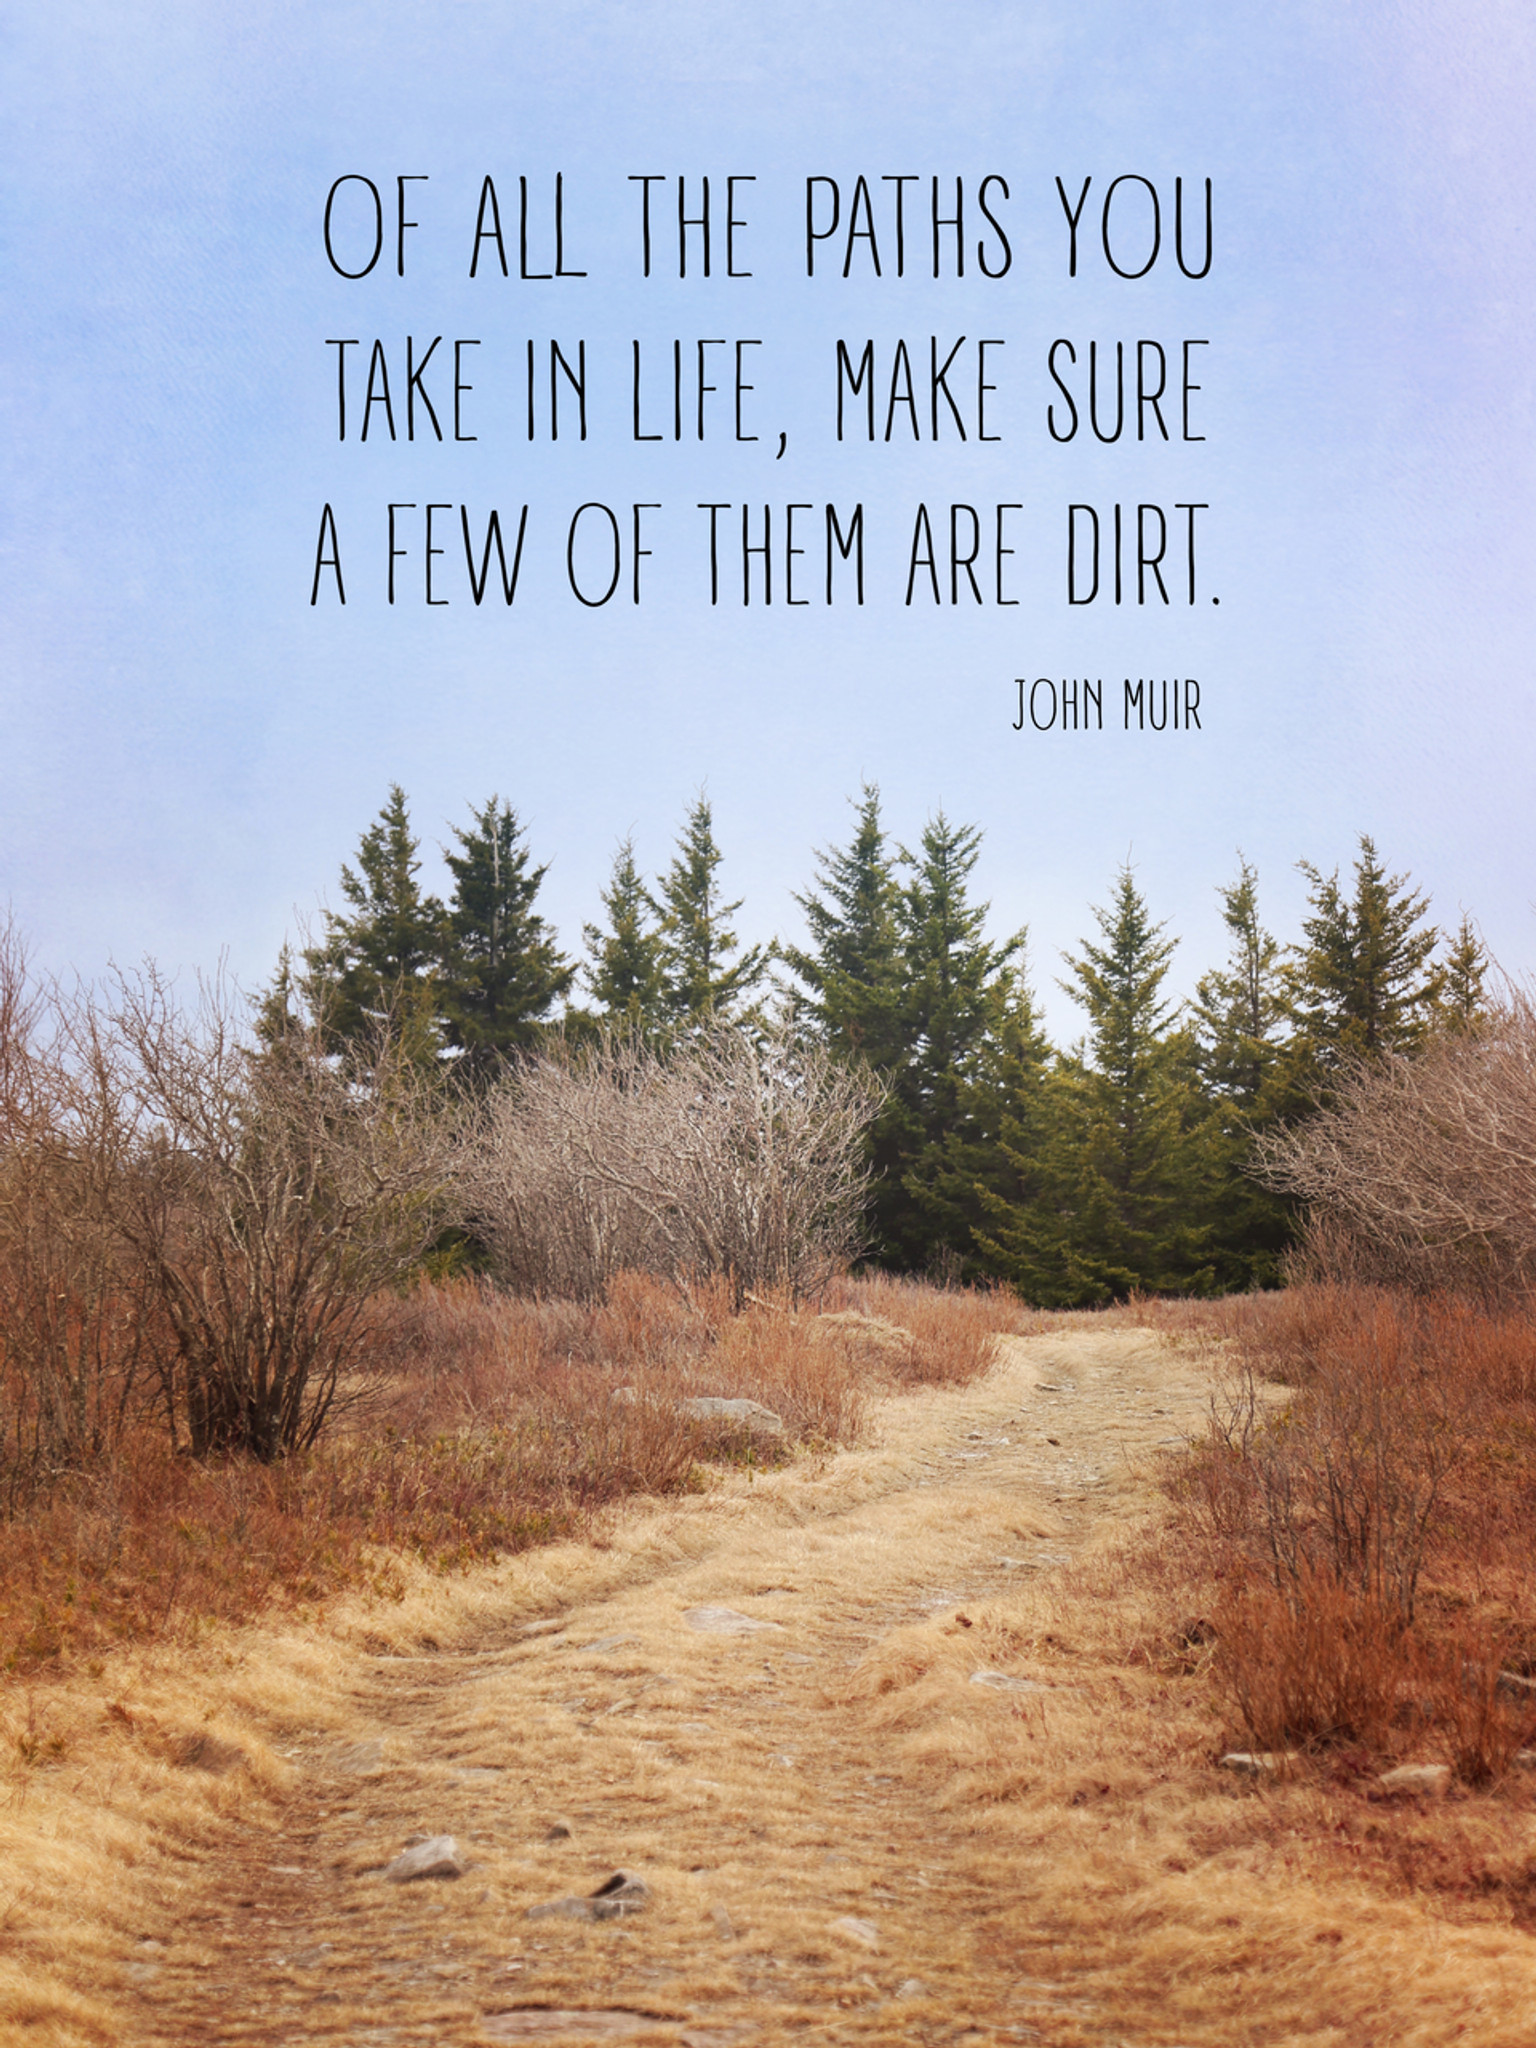 Of All The Paths You Take In Life Make Sure A Few Of Them Are Dirt